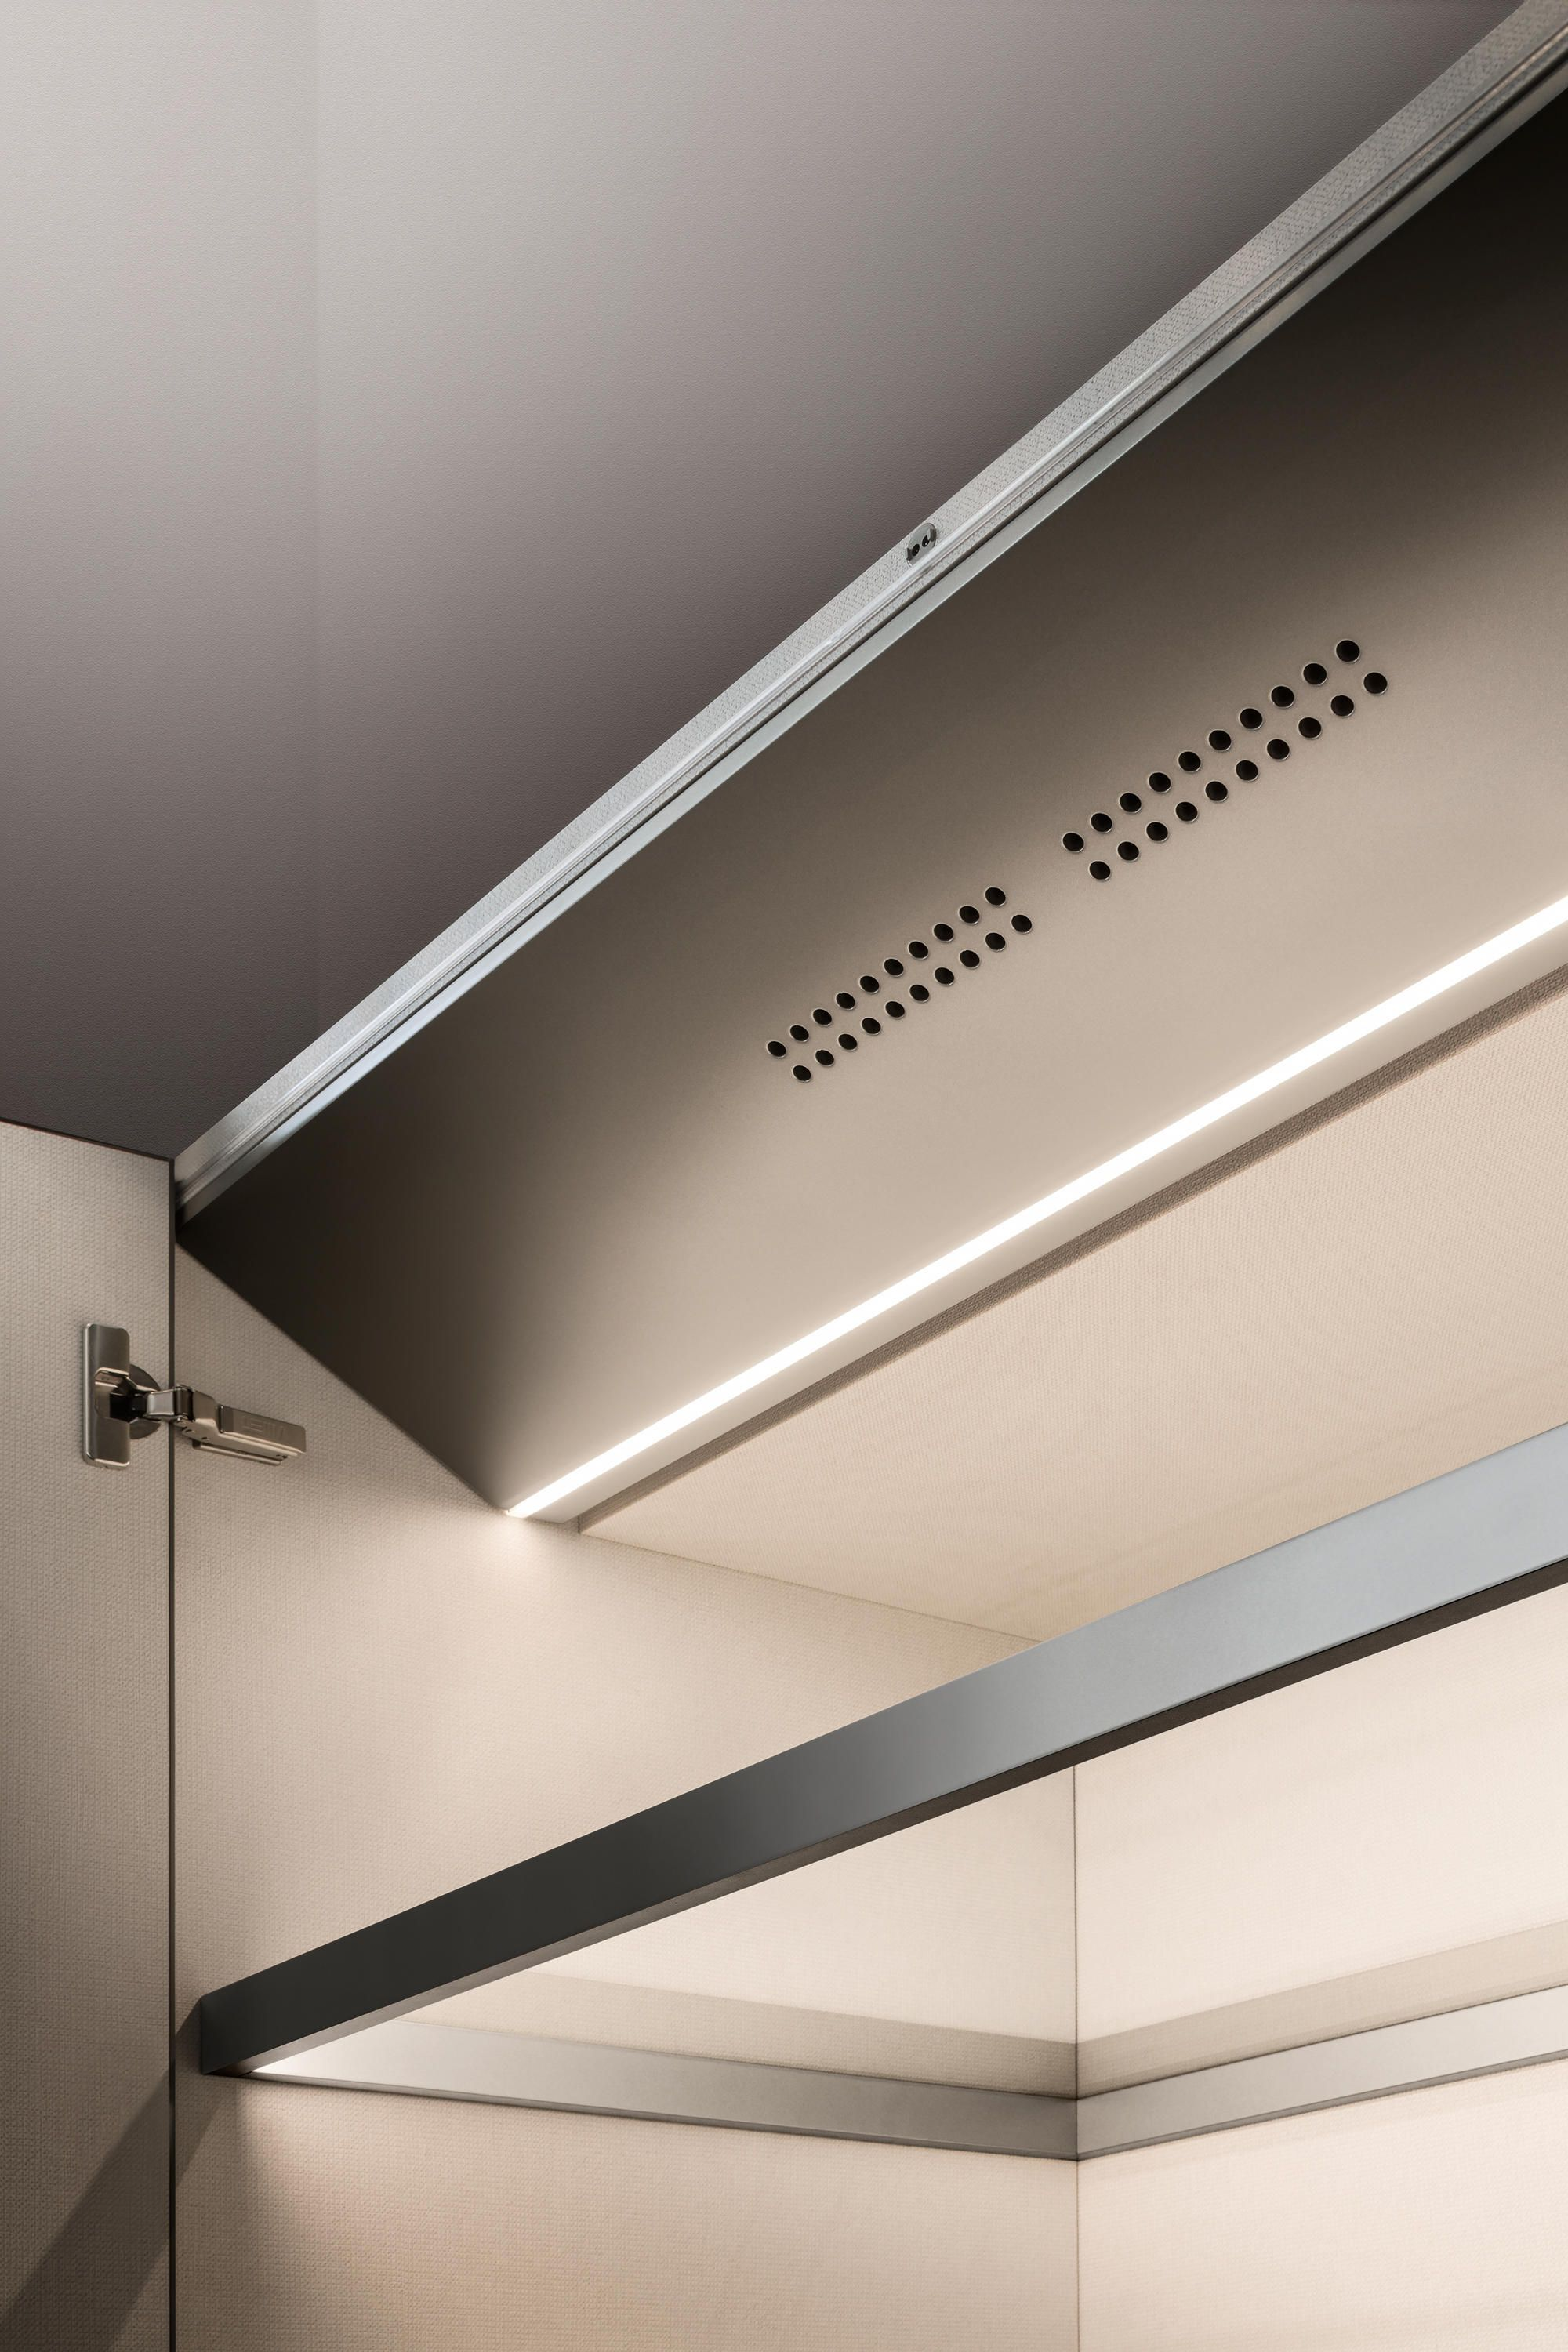 Air Cleaning System By Lema Architonic Nowonarchitonic Interior